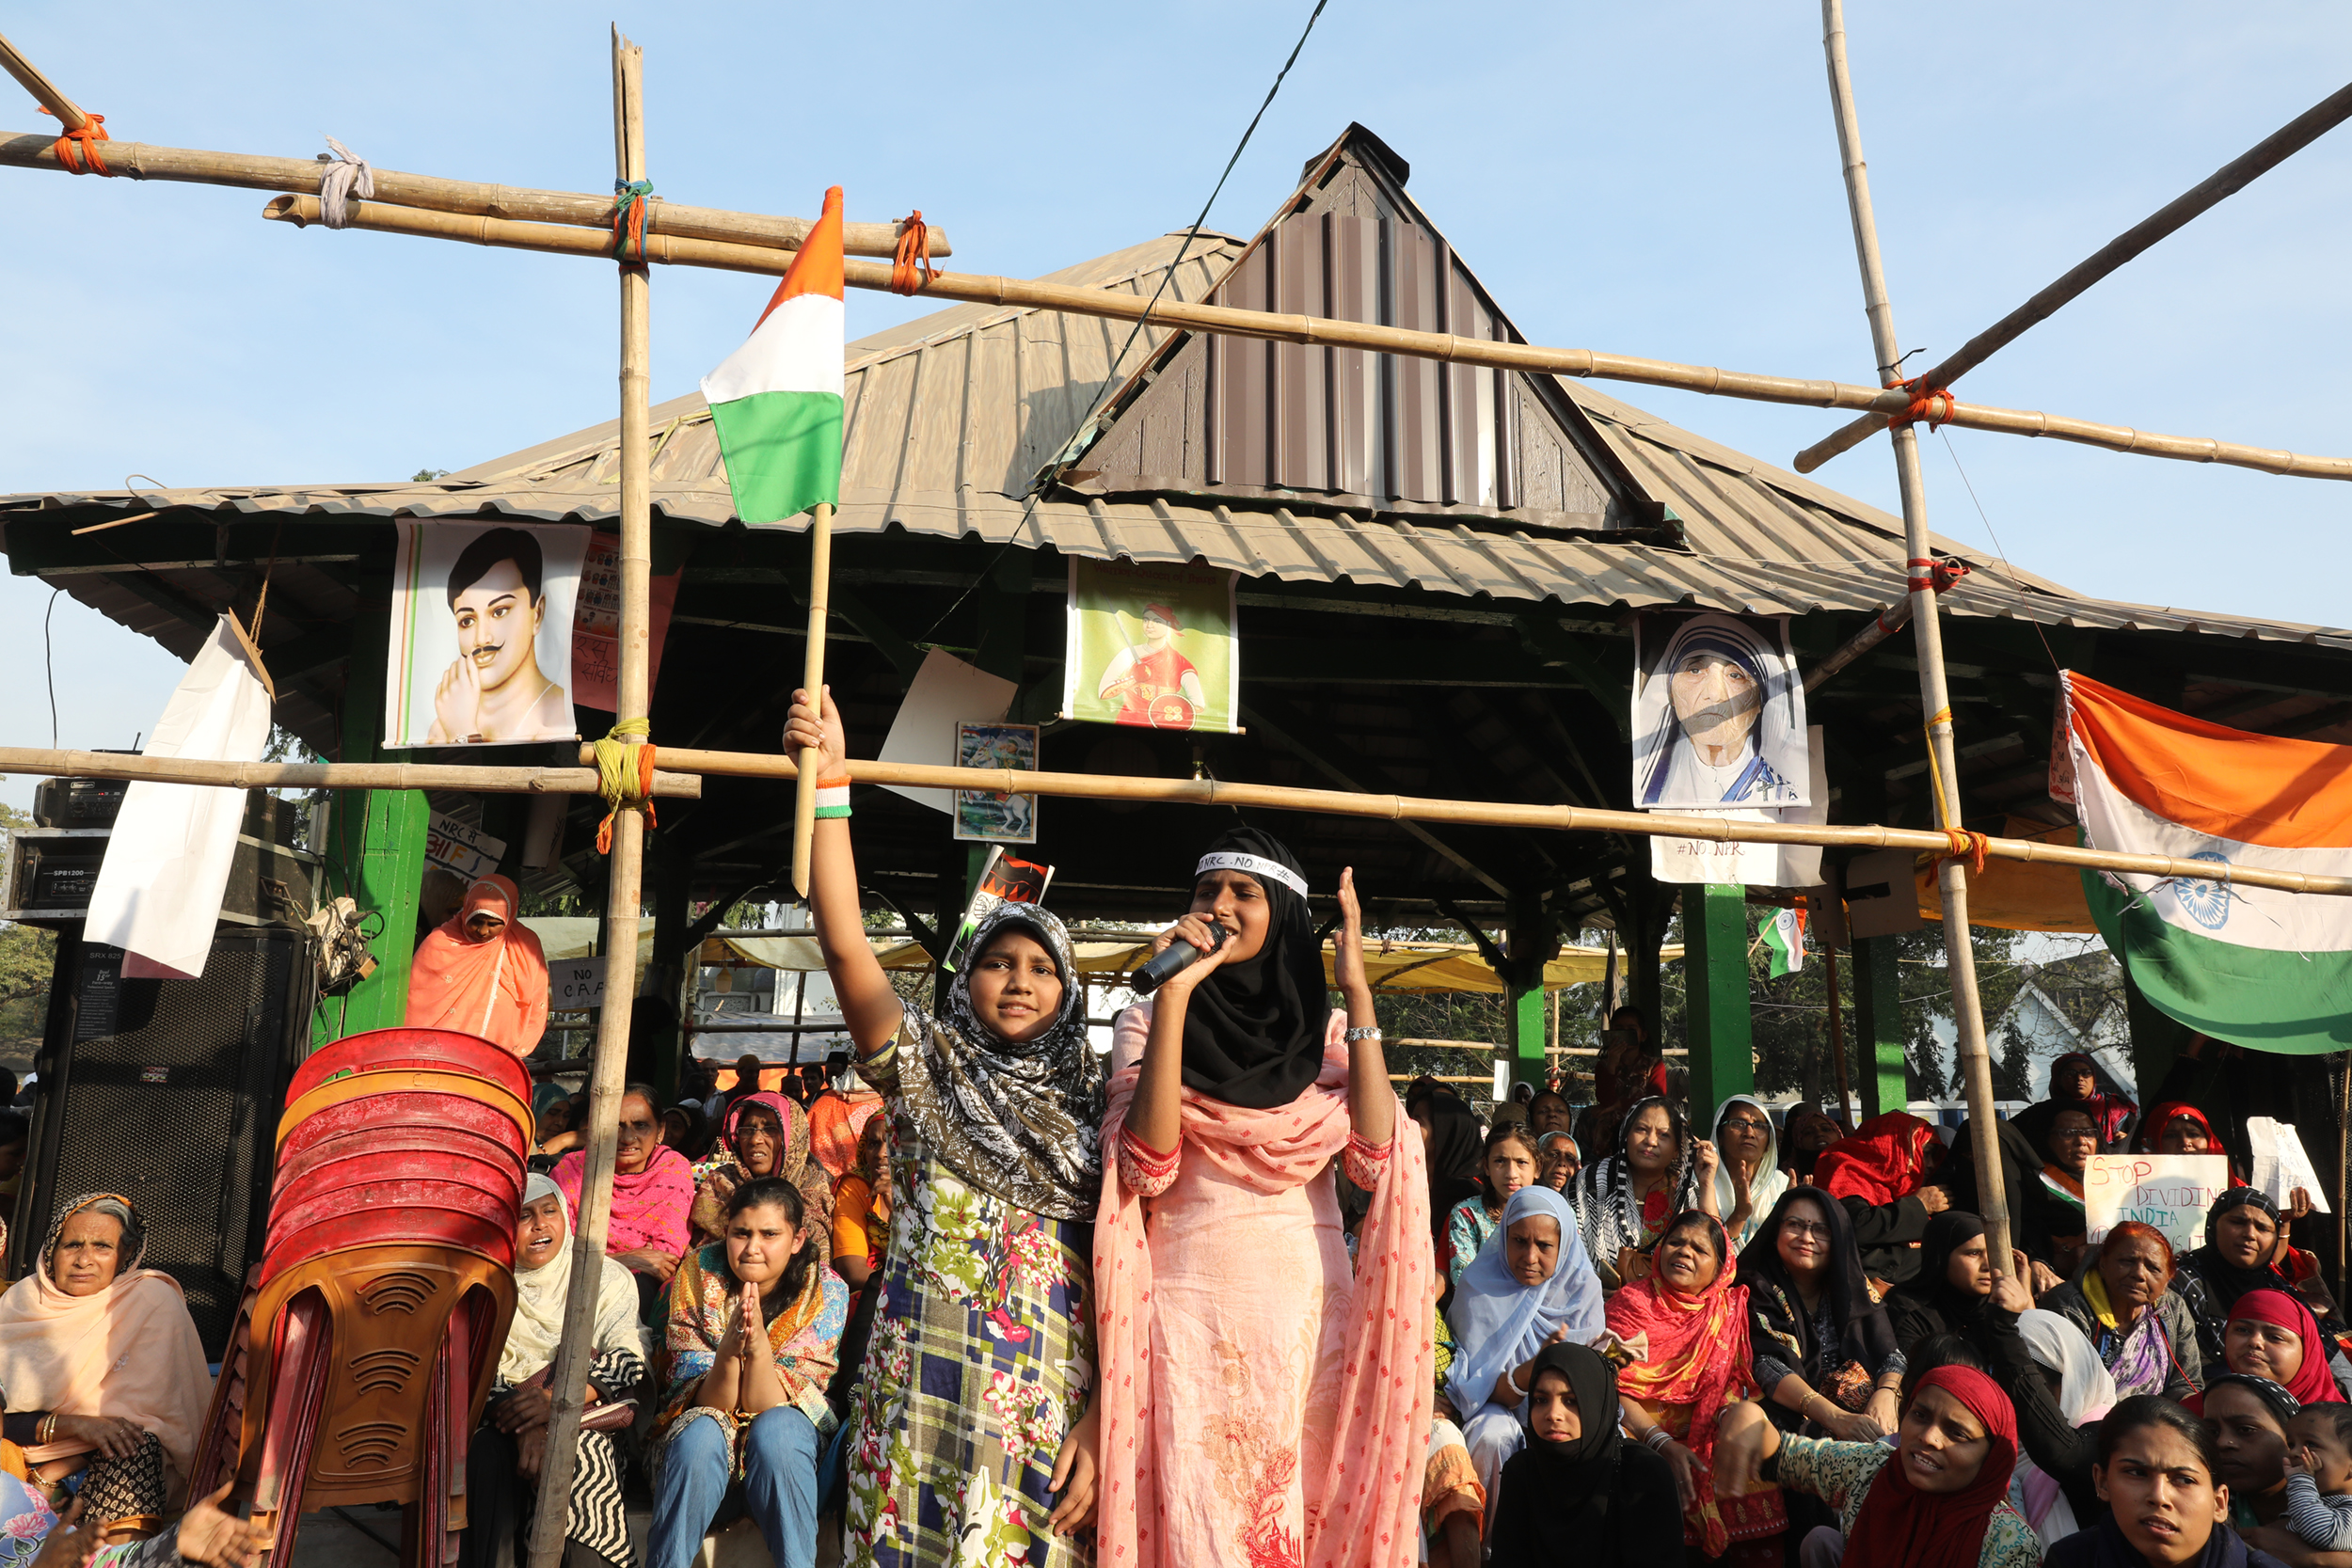 Muslim women protesting against the Indian government's plans of introducing a national register of citizens, Park Circus, Kolkata. January 2020.